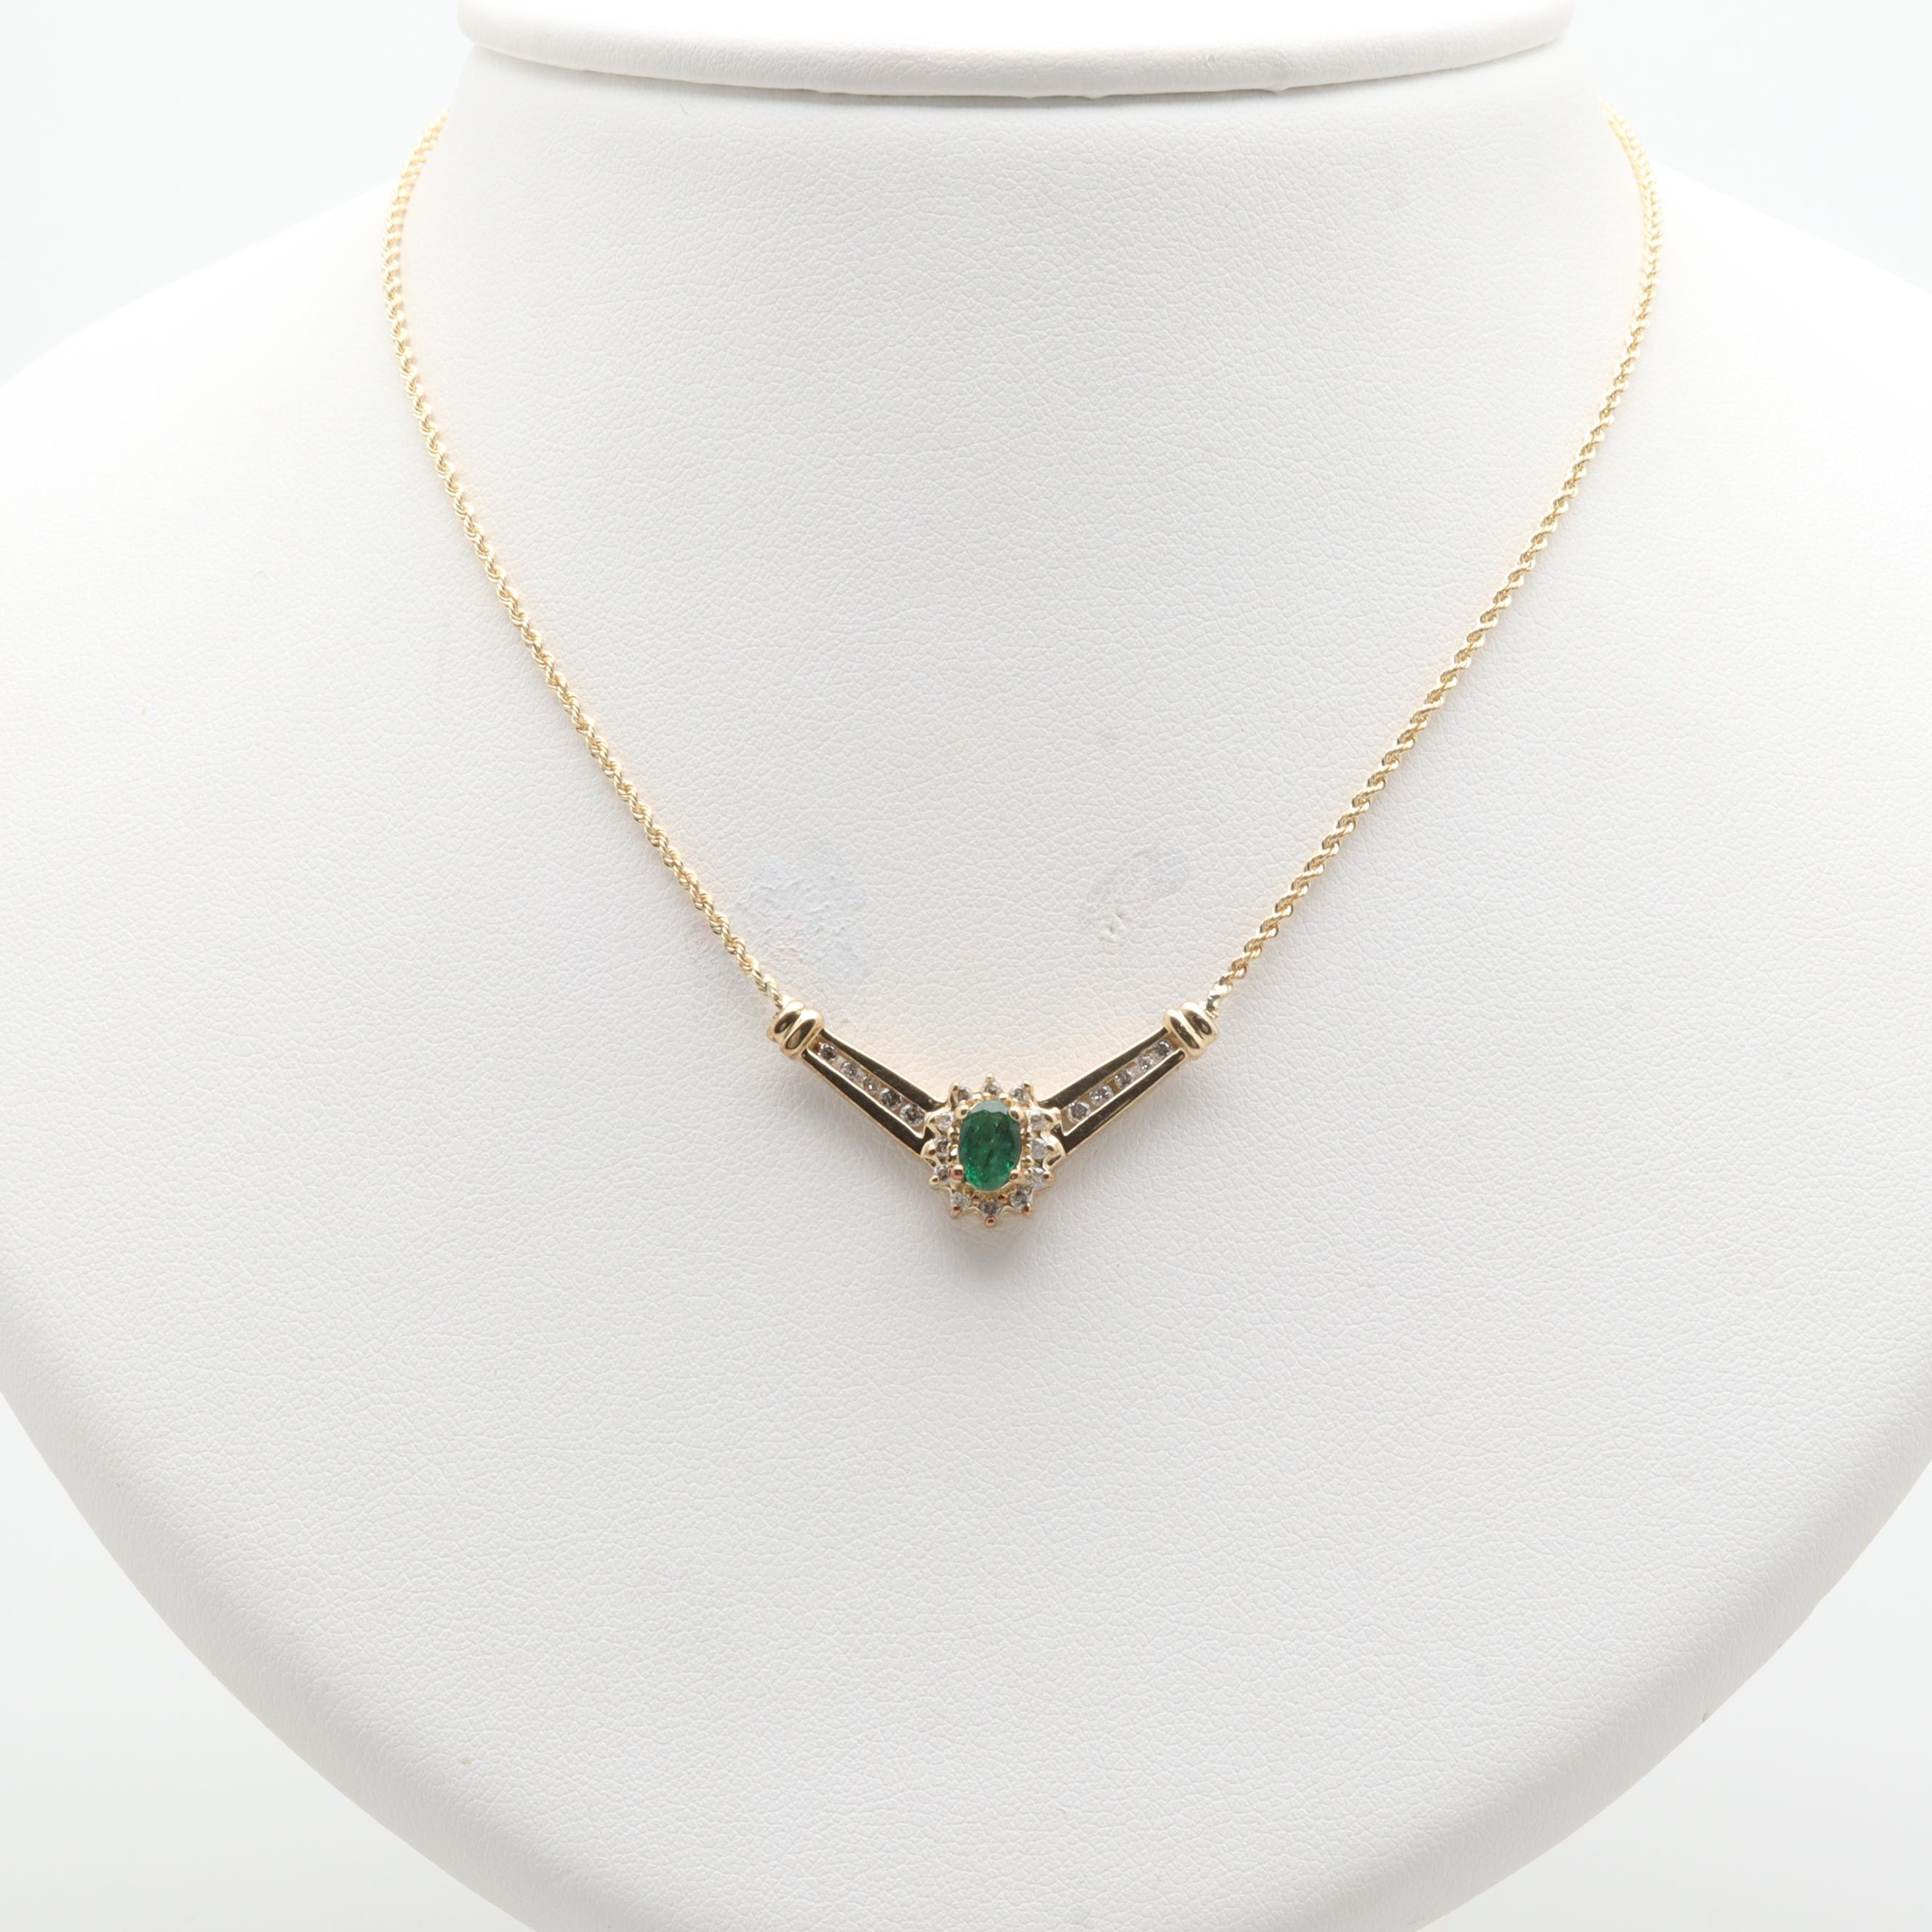 10K and 14K Yellow Gold Emerald and Diamond Necklace With Alwan Vahan Pendant